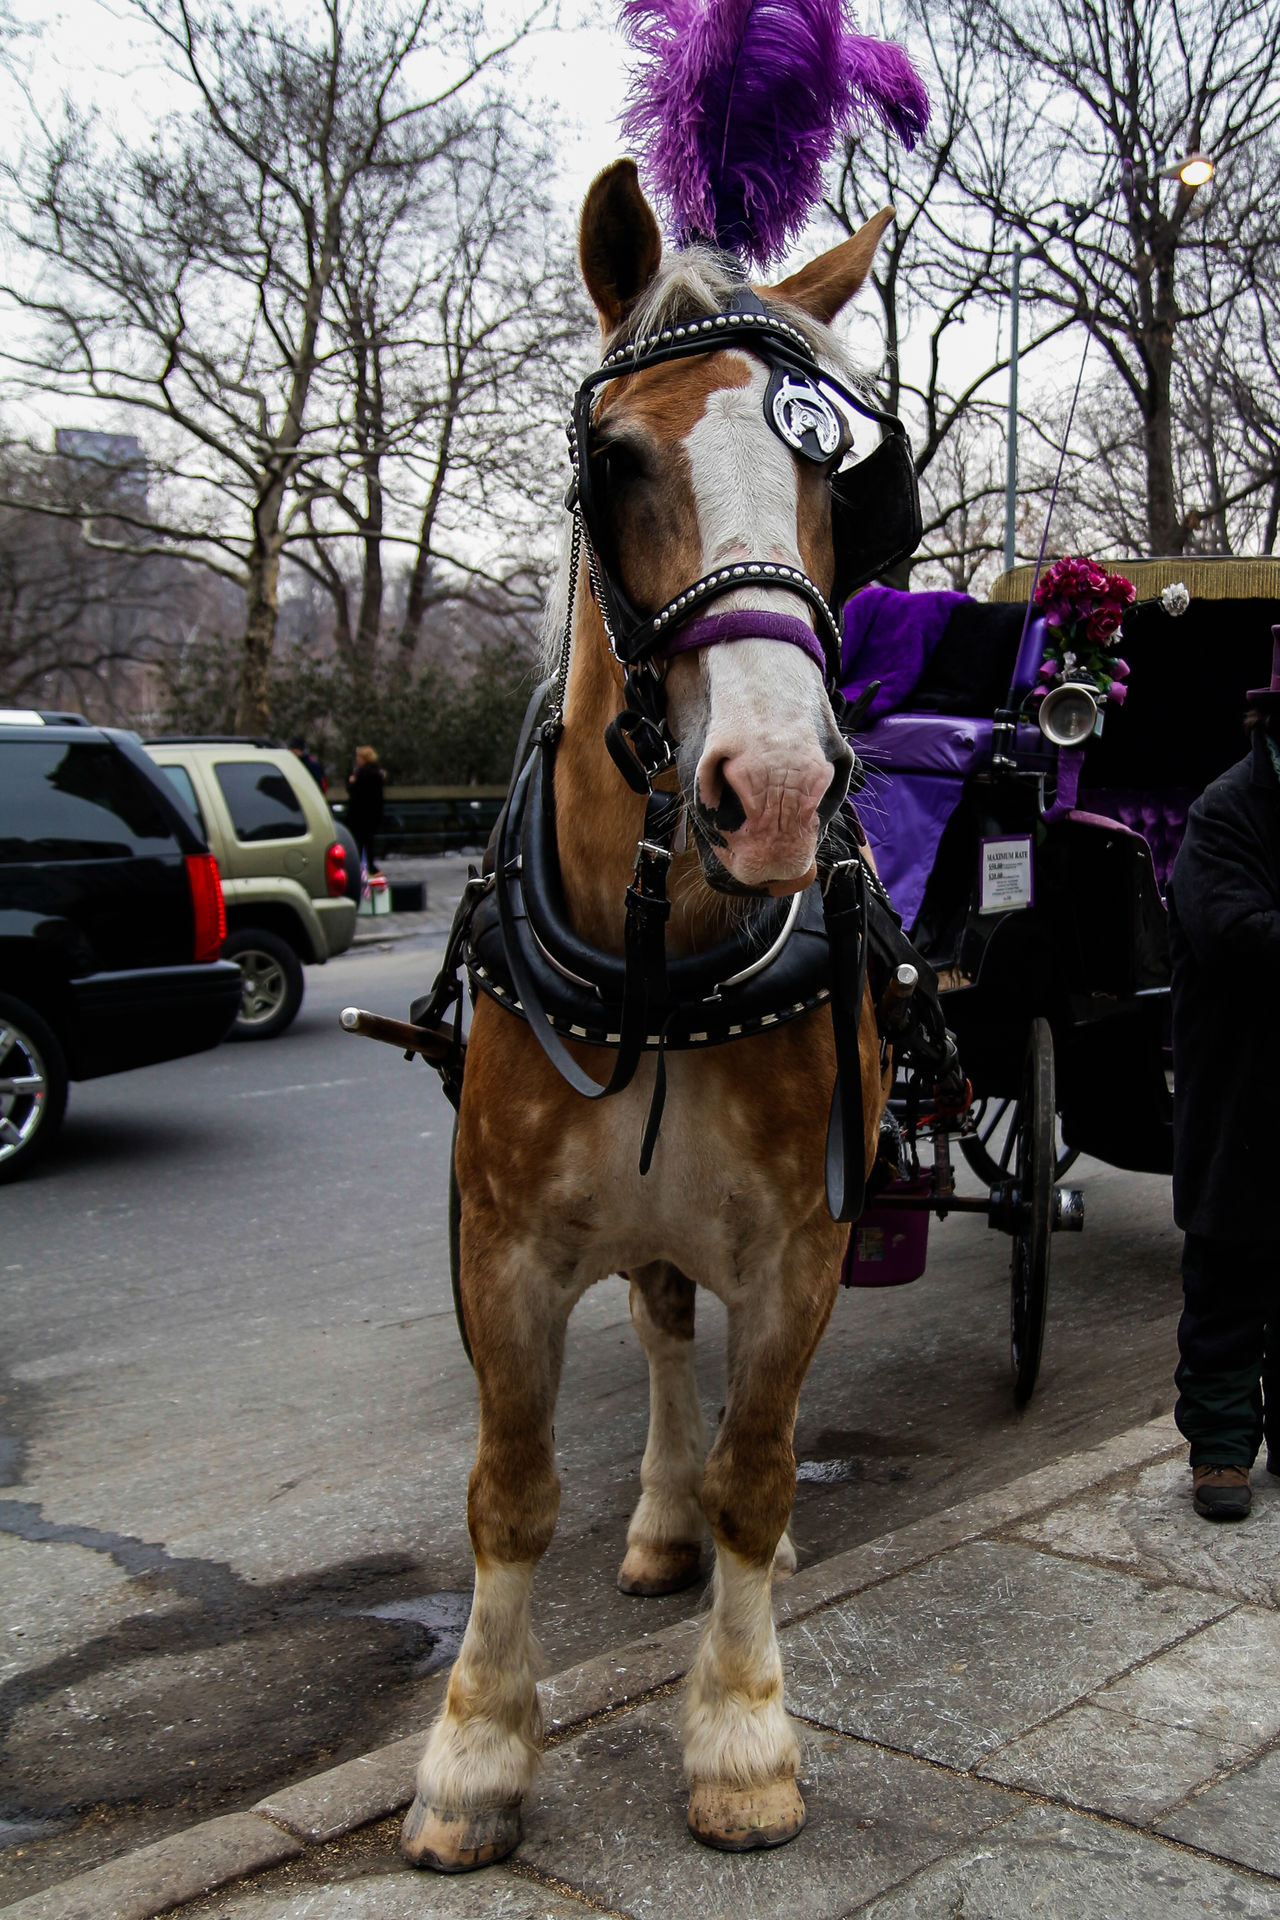 Animal Themes Bridle Central Park - NYC Day Domestic Animals Horse Horse Cart Mammal Mode Of Transport No People NYC One Animal Outdoors Pets Standing Transportation Tree Working Animal